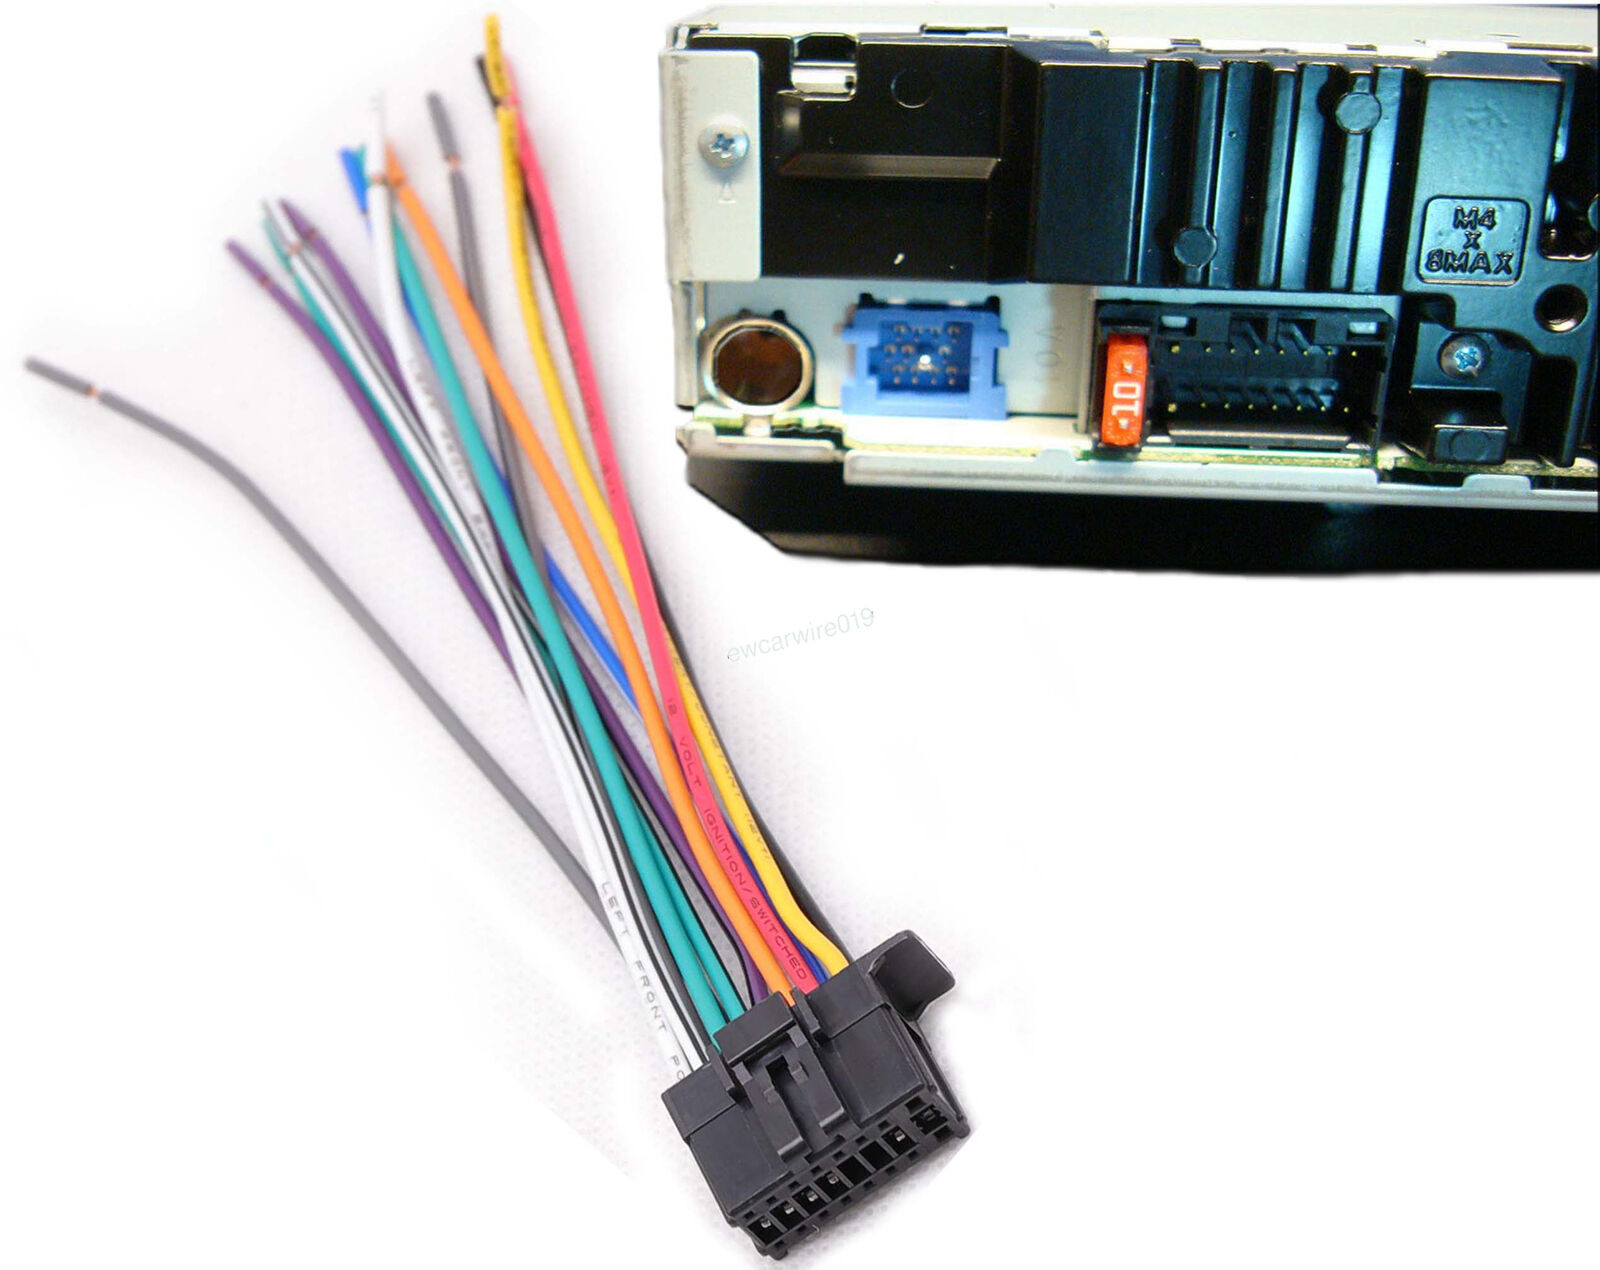 16 Pin Car Stereo Radio Wiring Harness Power Plug For 2010 UP Pioneer DEH  1300MP DEH 2400UB DEH 3400UB|Cables, Adapters & Sockets| - AliExpressAliExpress